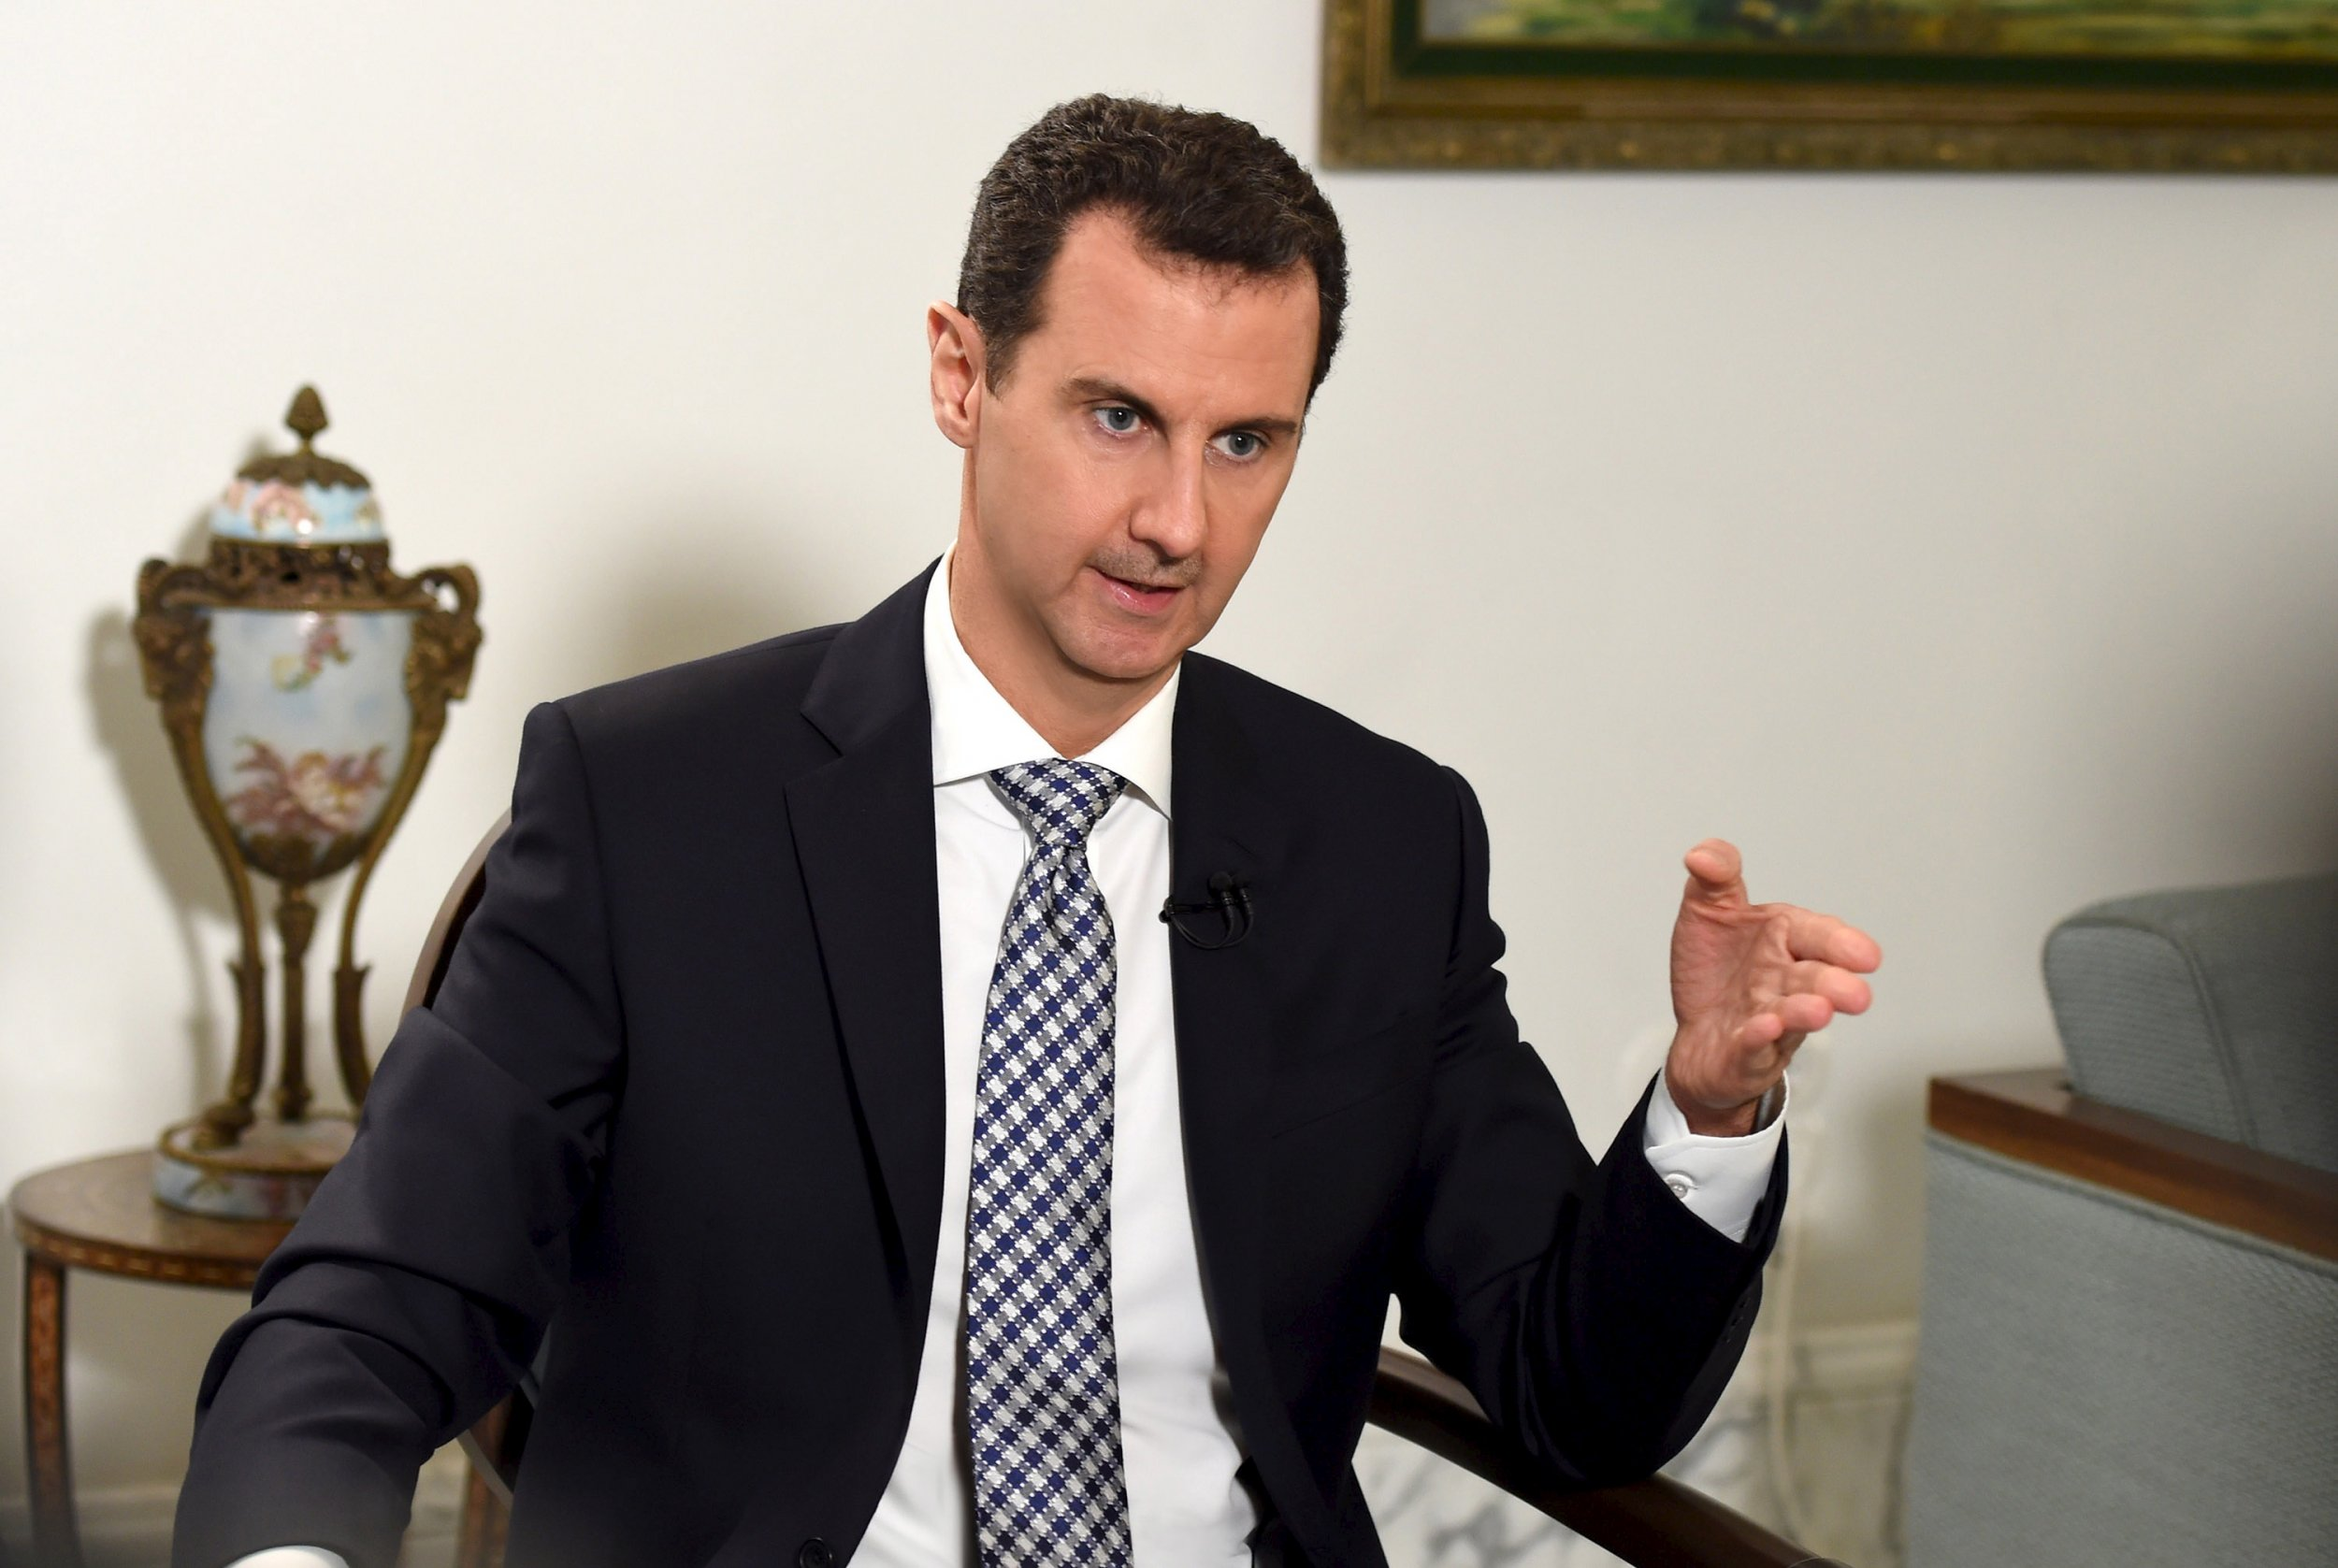 Assad Interview